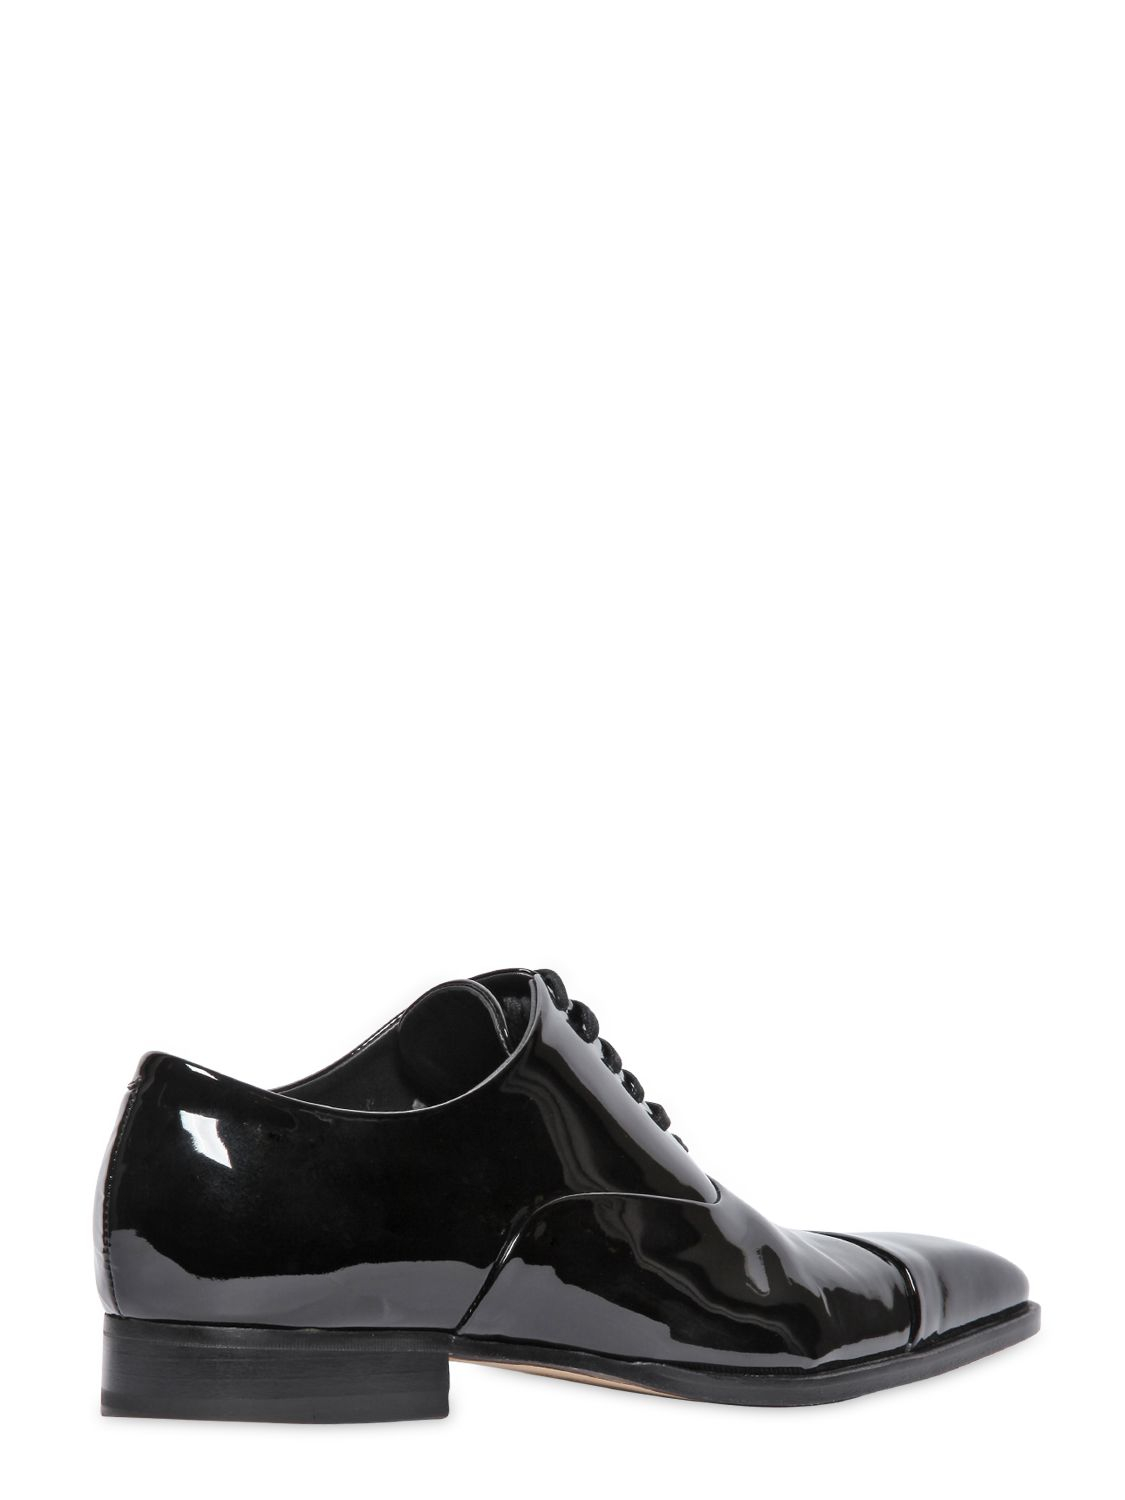 dsquared 178 patent leather oxford shoes in black for lyst